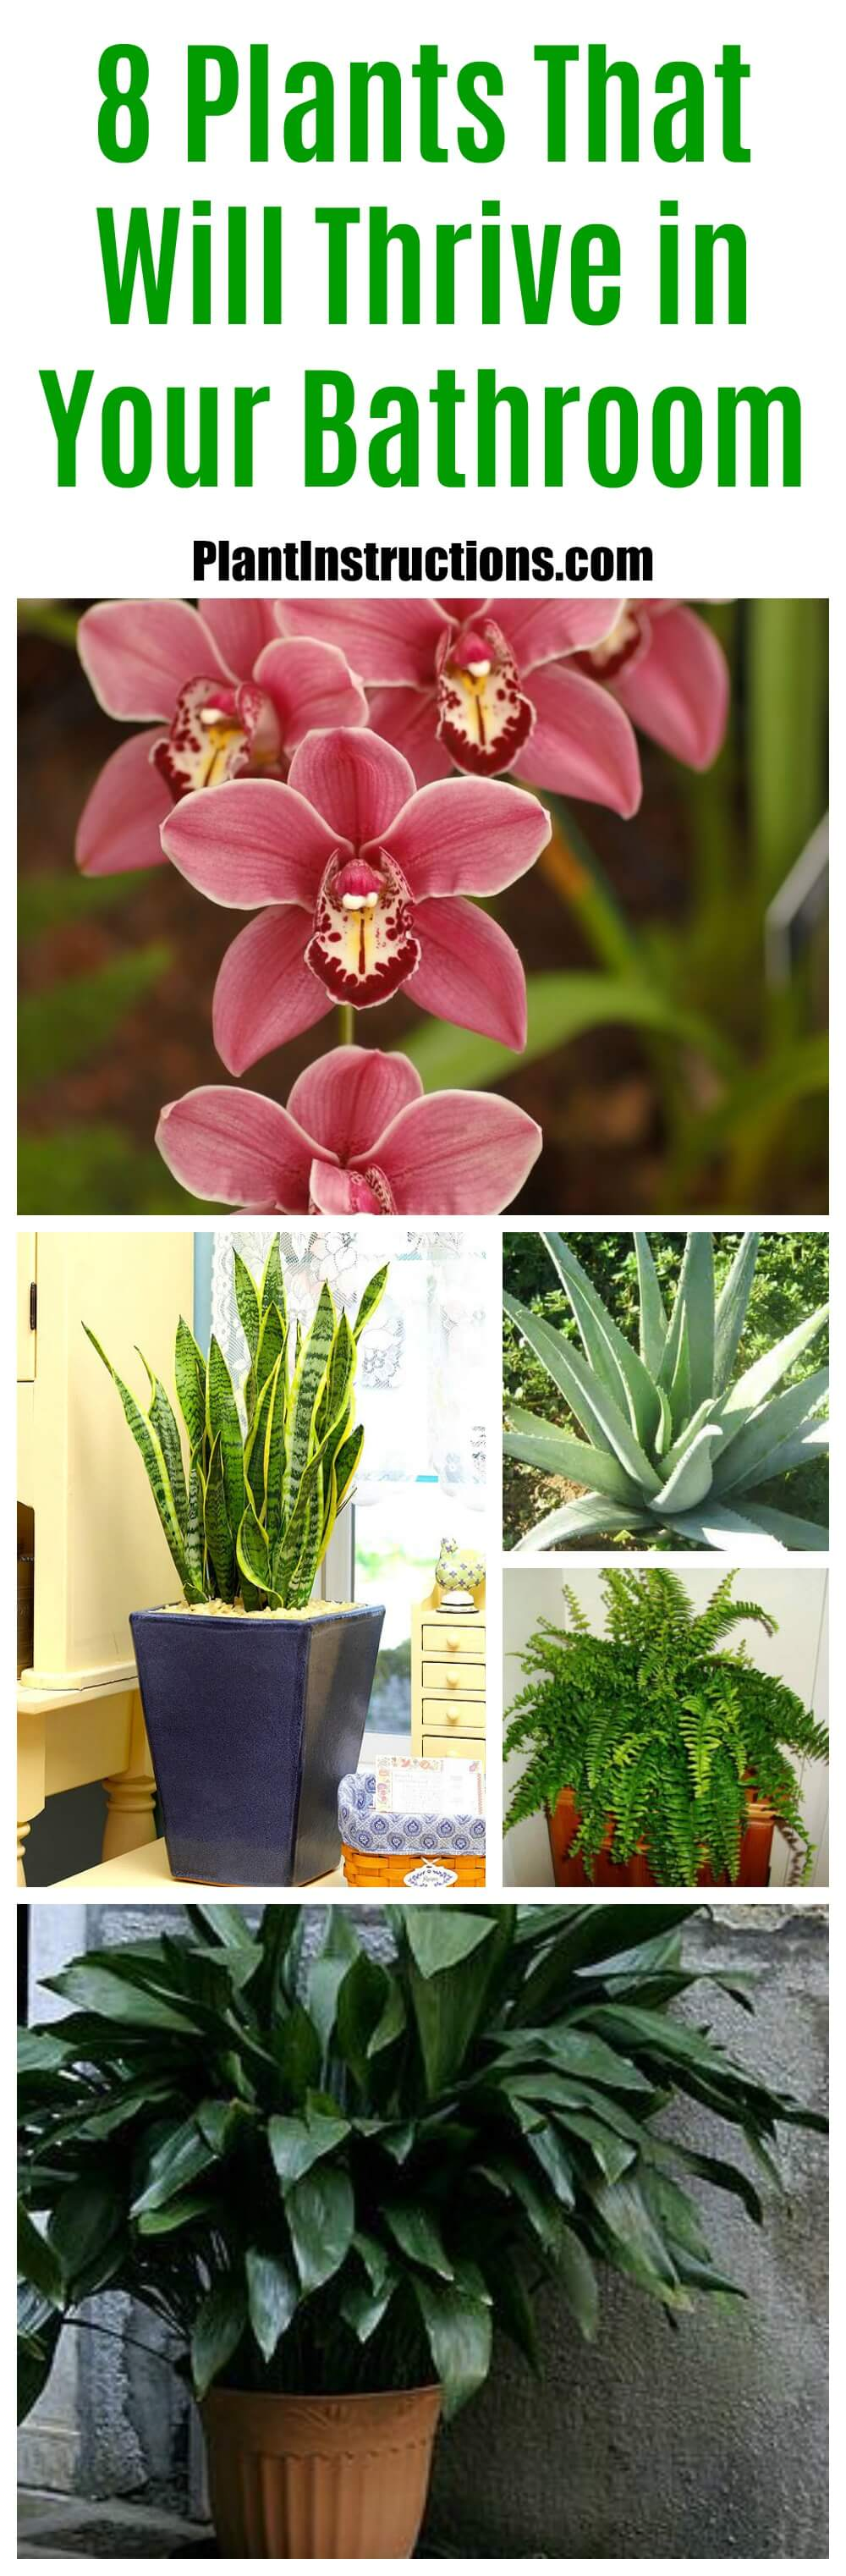 These are the 8 BEST bathroom plants to have as they not only look great, but they'll also purify the air removing toxins and other impurities.